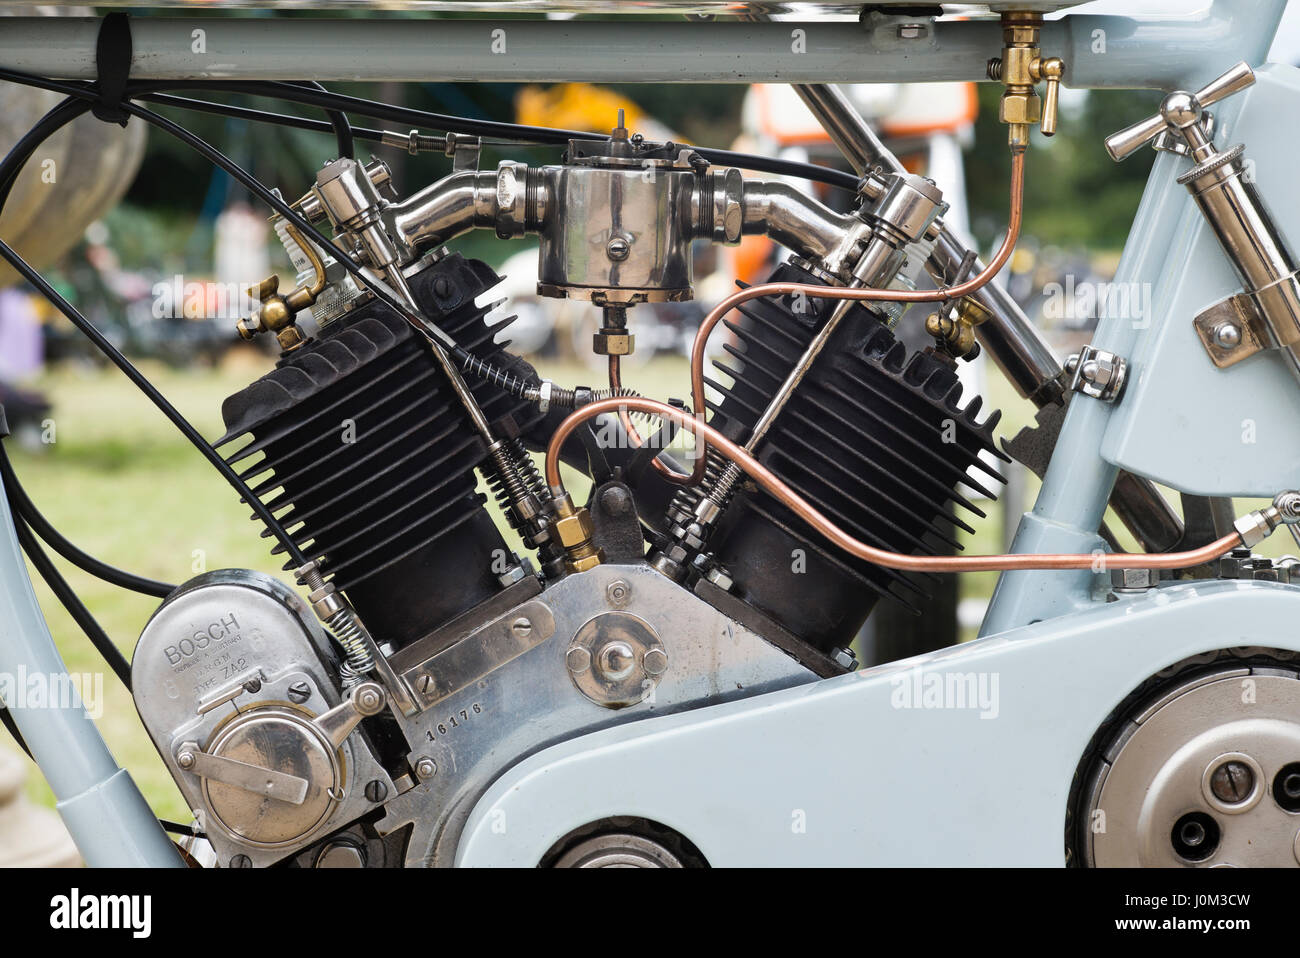 1917 Husqvarna motorcycle engine at Malle, The Mile Racing event. London - Stock Image